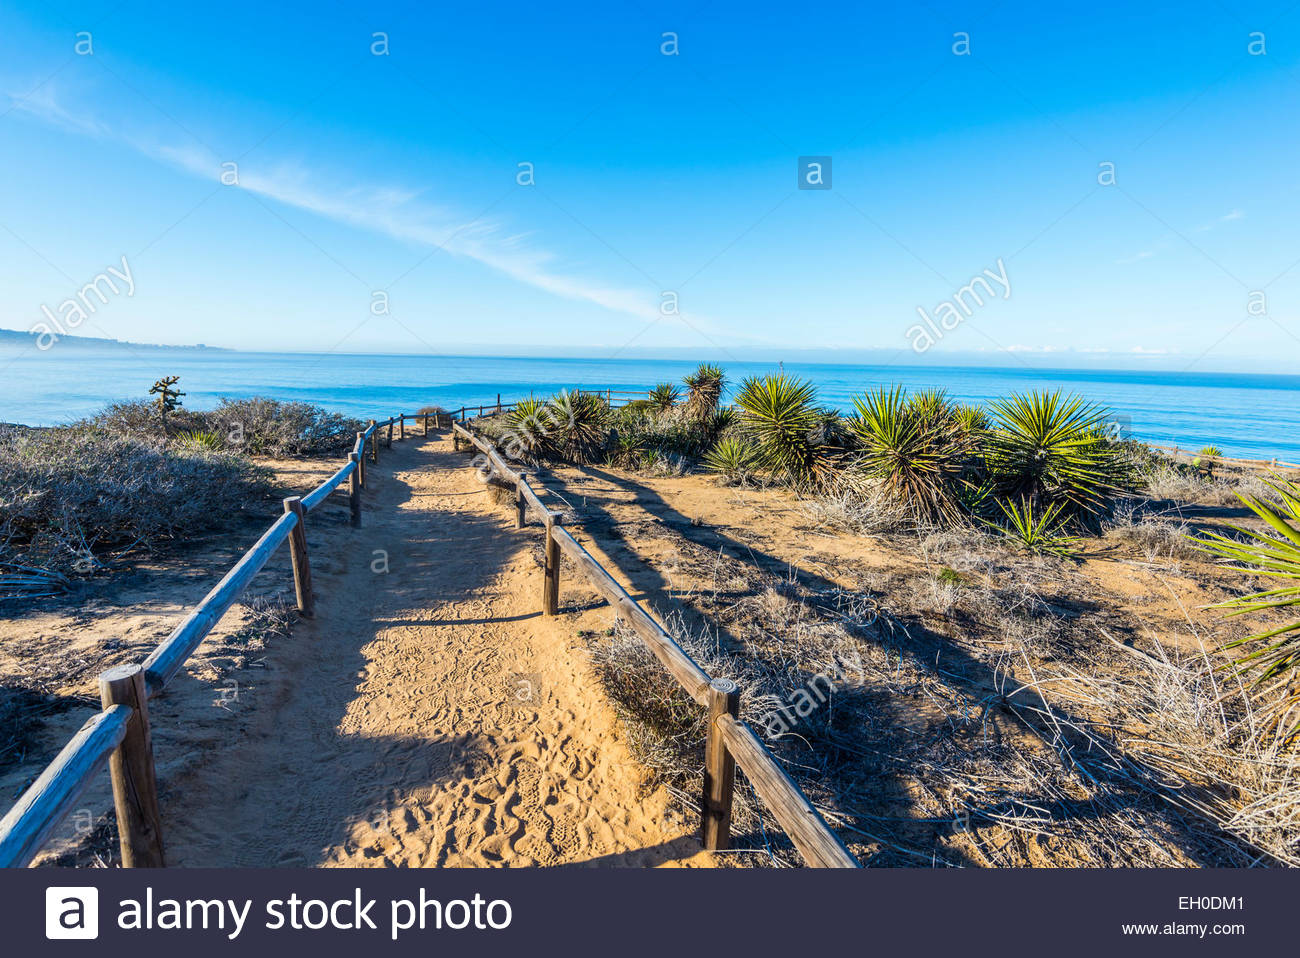 View of the ocean, plants, and chaparral at Yucca Point.  Torrey Pines State Natural Reserve, La Jolla, California, - Stock Image